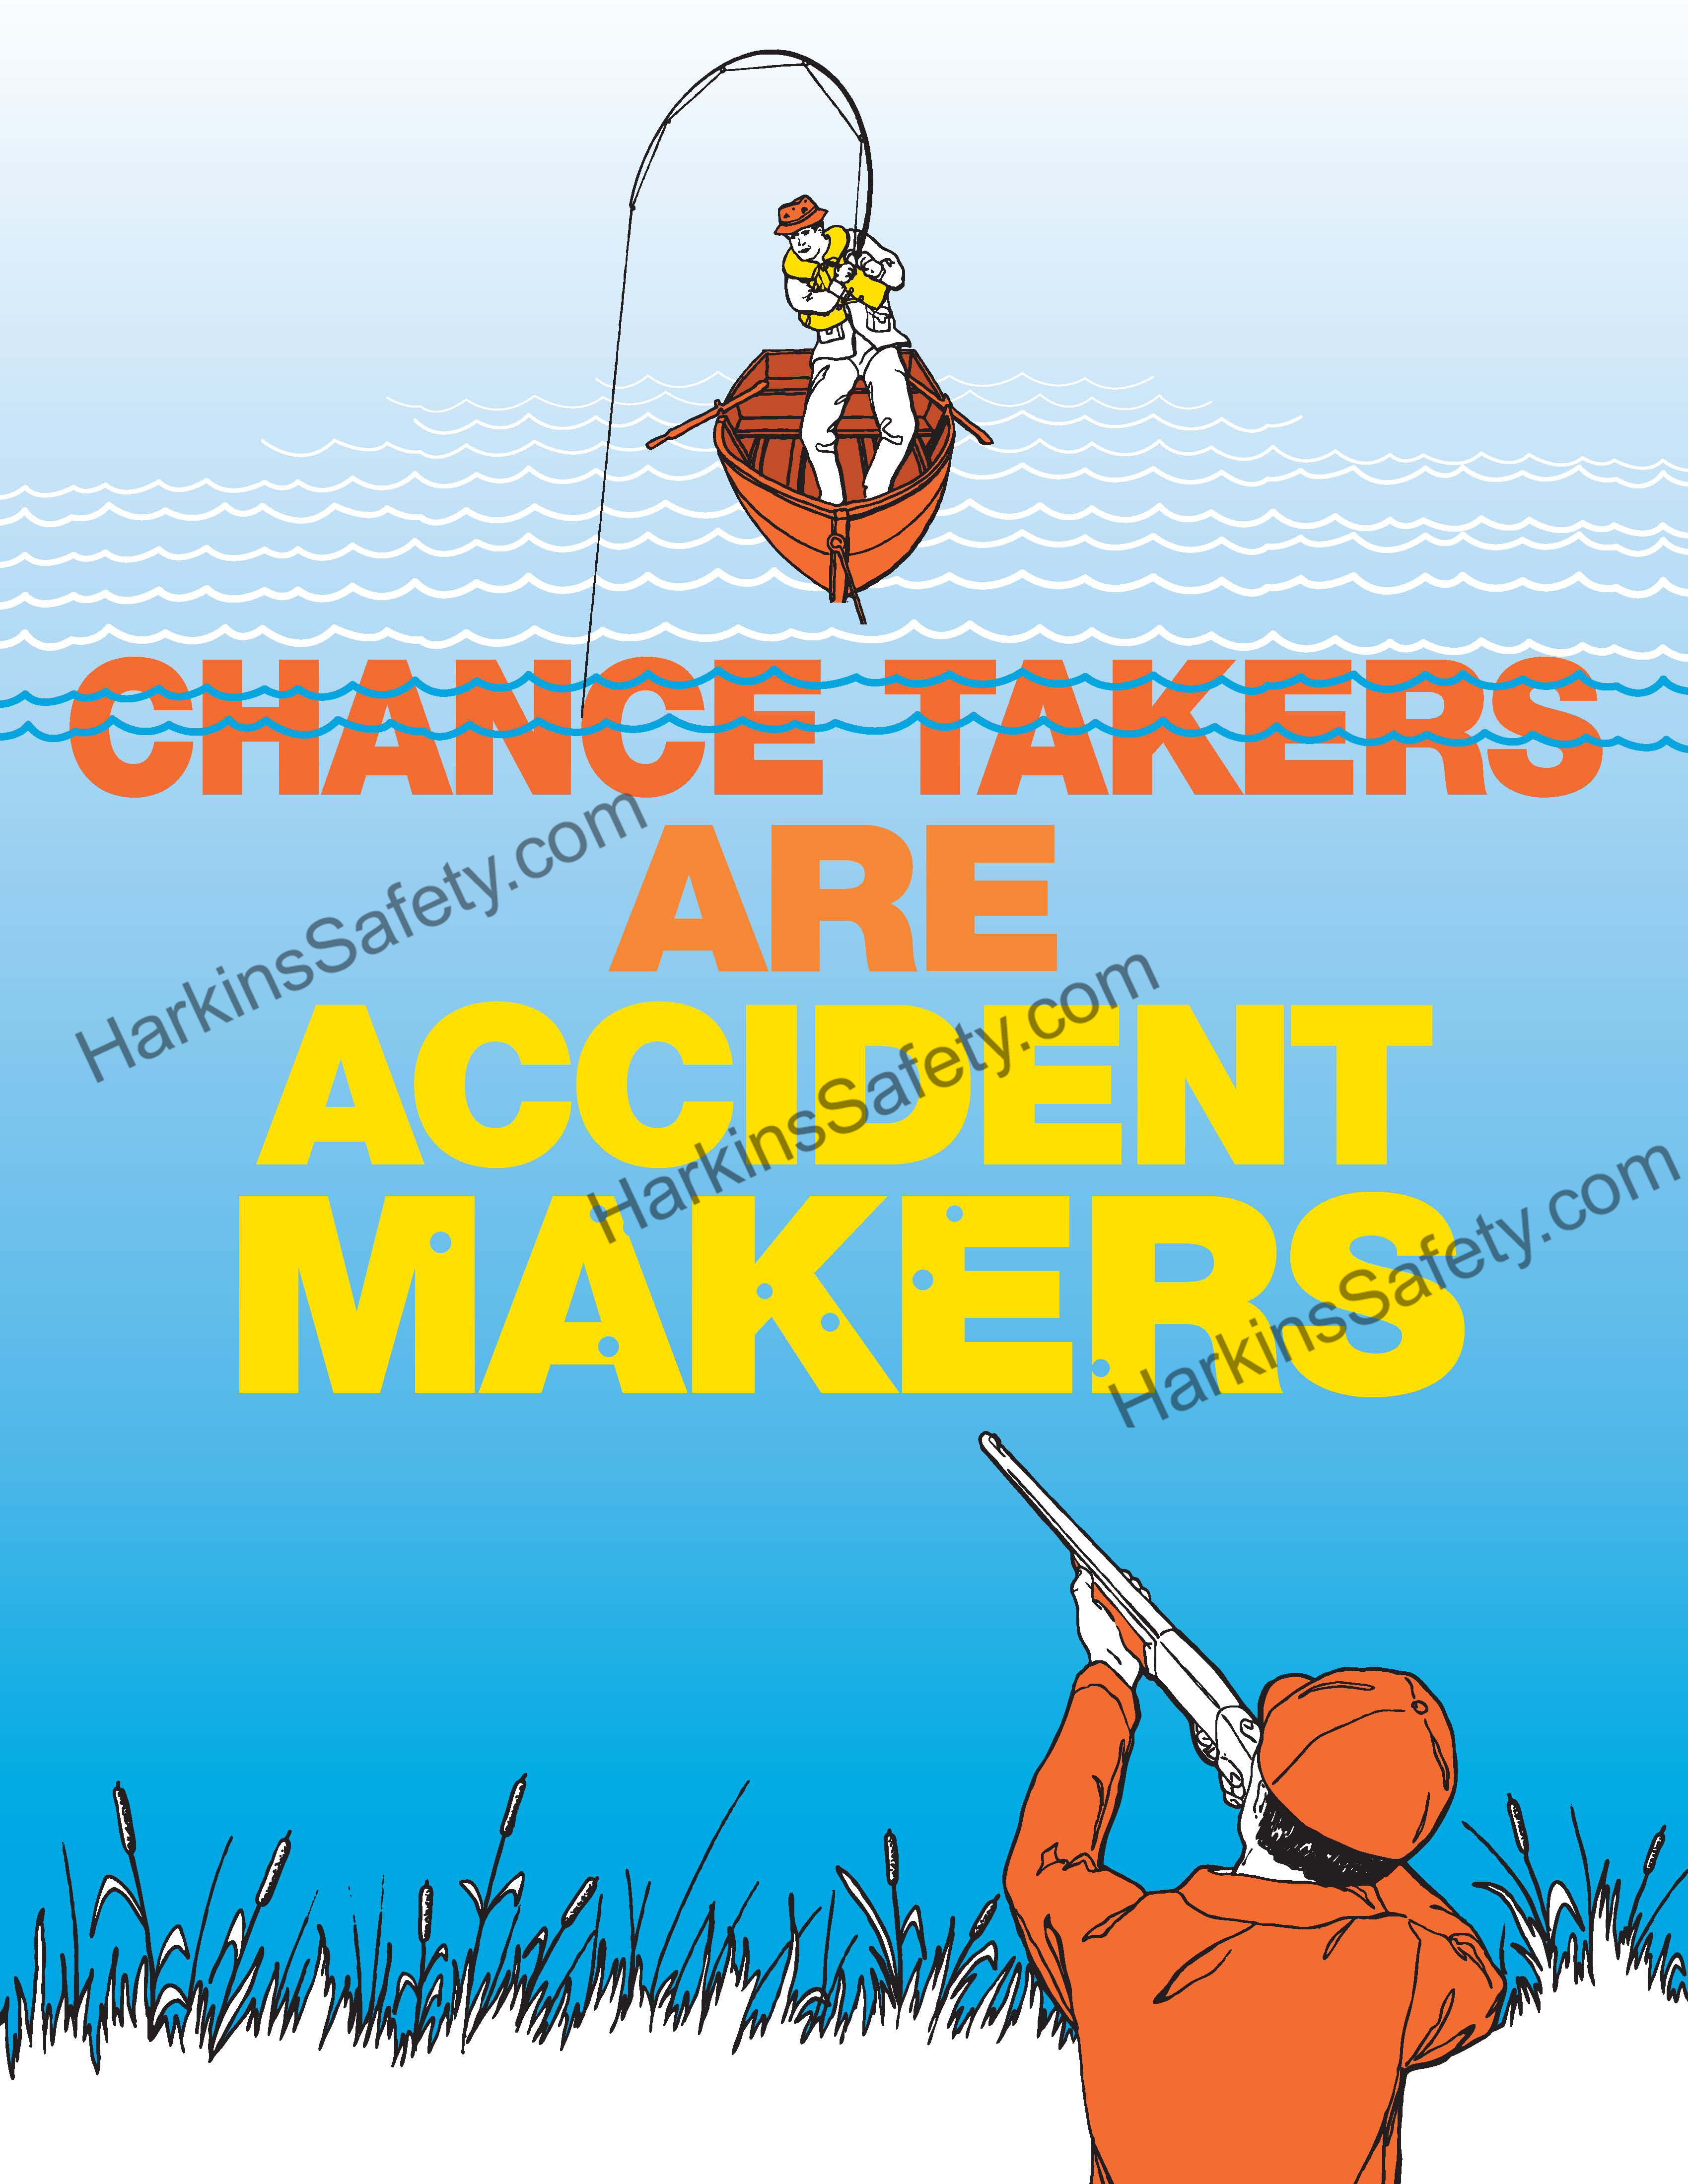 Chance Takers...